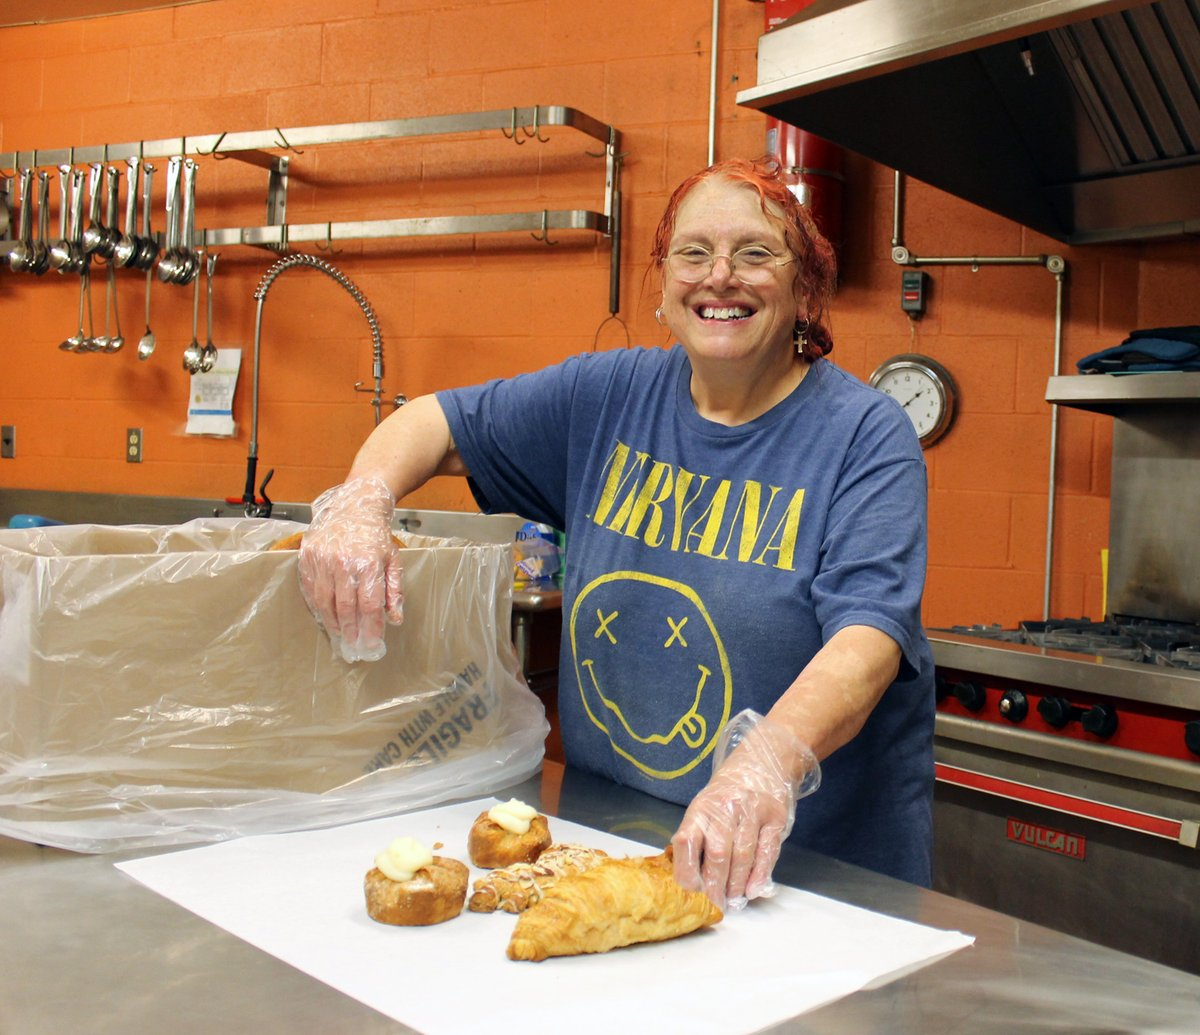 Now through New Year's Day, I'll be tweeting about some people who don't get enough credit for what they do. The first is Adrienne Marchetti, of the Pawtucket Soup Kitchen, who's been working 100-hour weeks during the pandemic to make sure enough food gets out to the homeless.